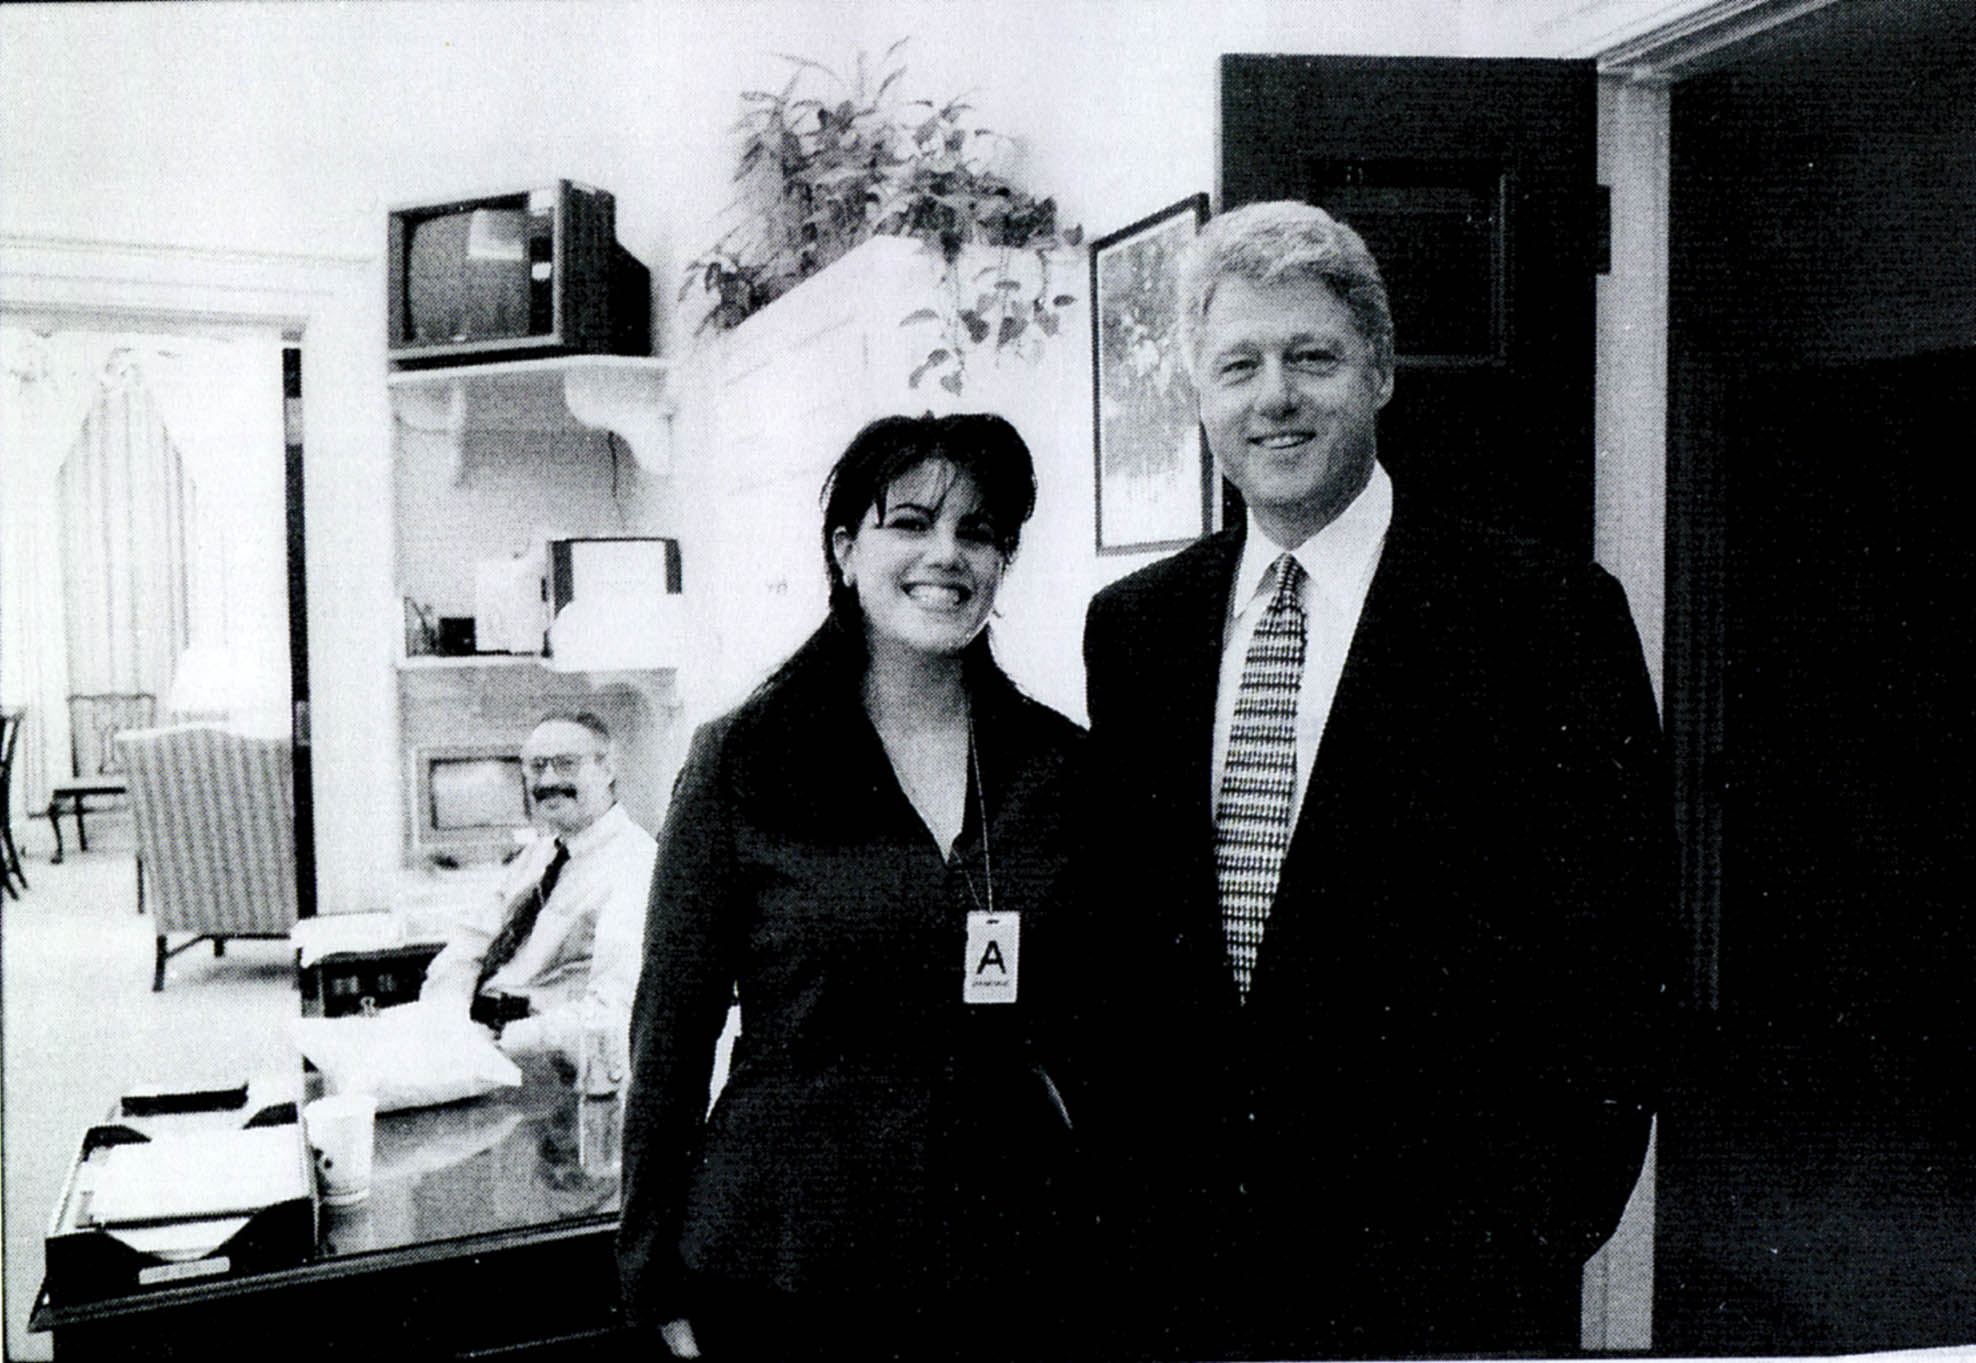 Monica Lewinsky meeting President Bill Clinton at a White House function in 1998 | Photo: Getty Images